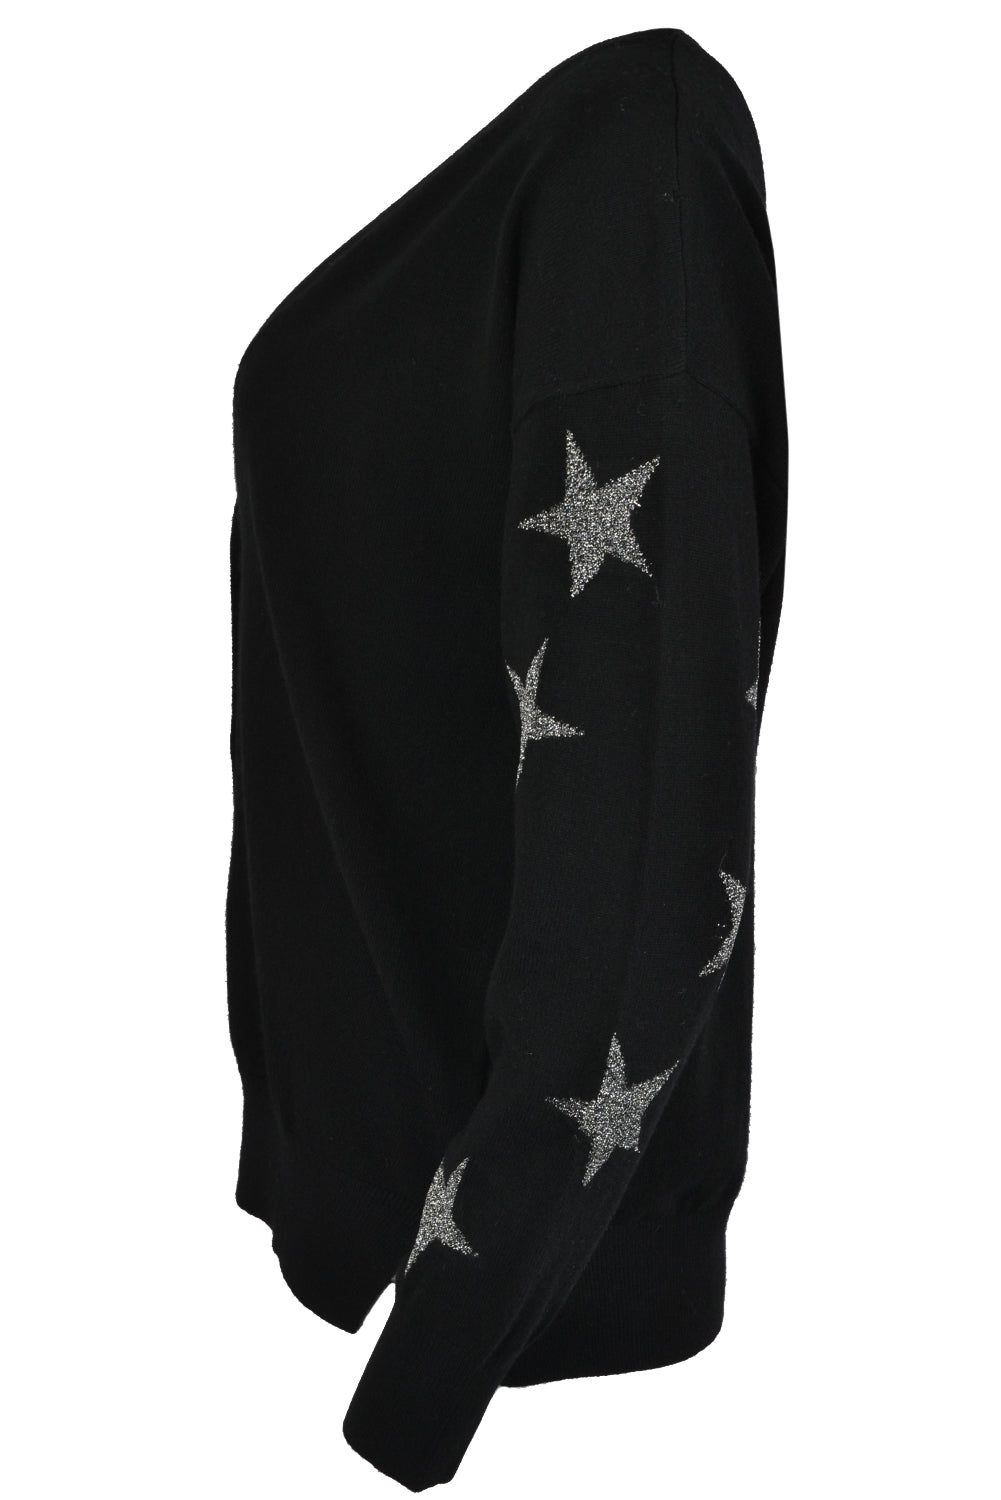 Jeff LETOILE CARD Lurex Stars Sleeve Cardigan Black